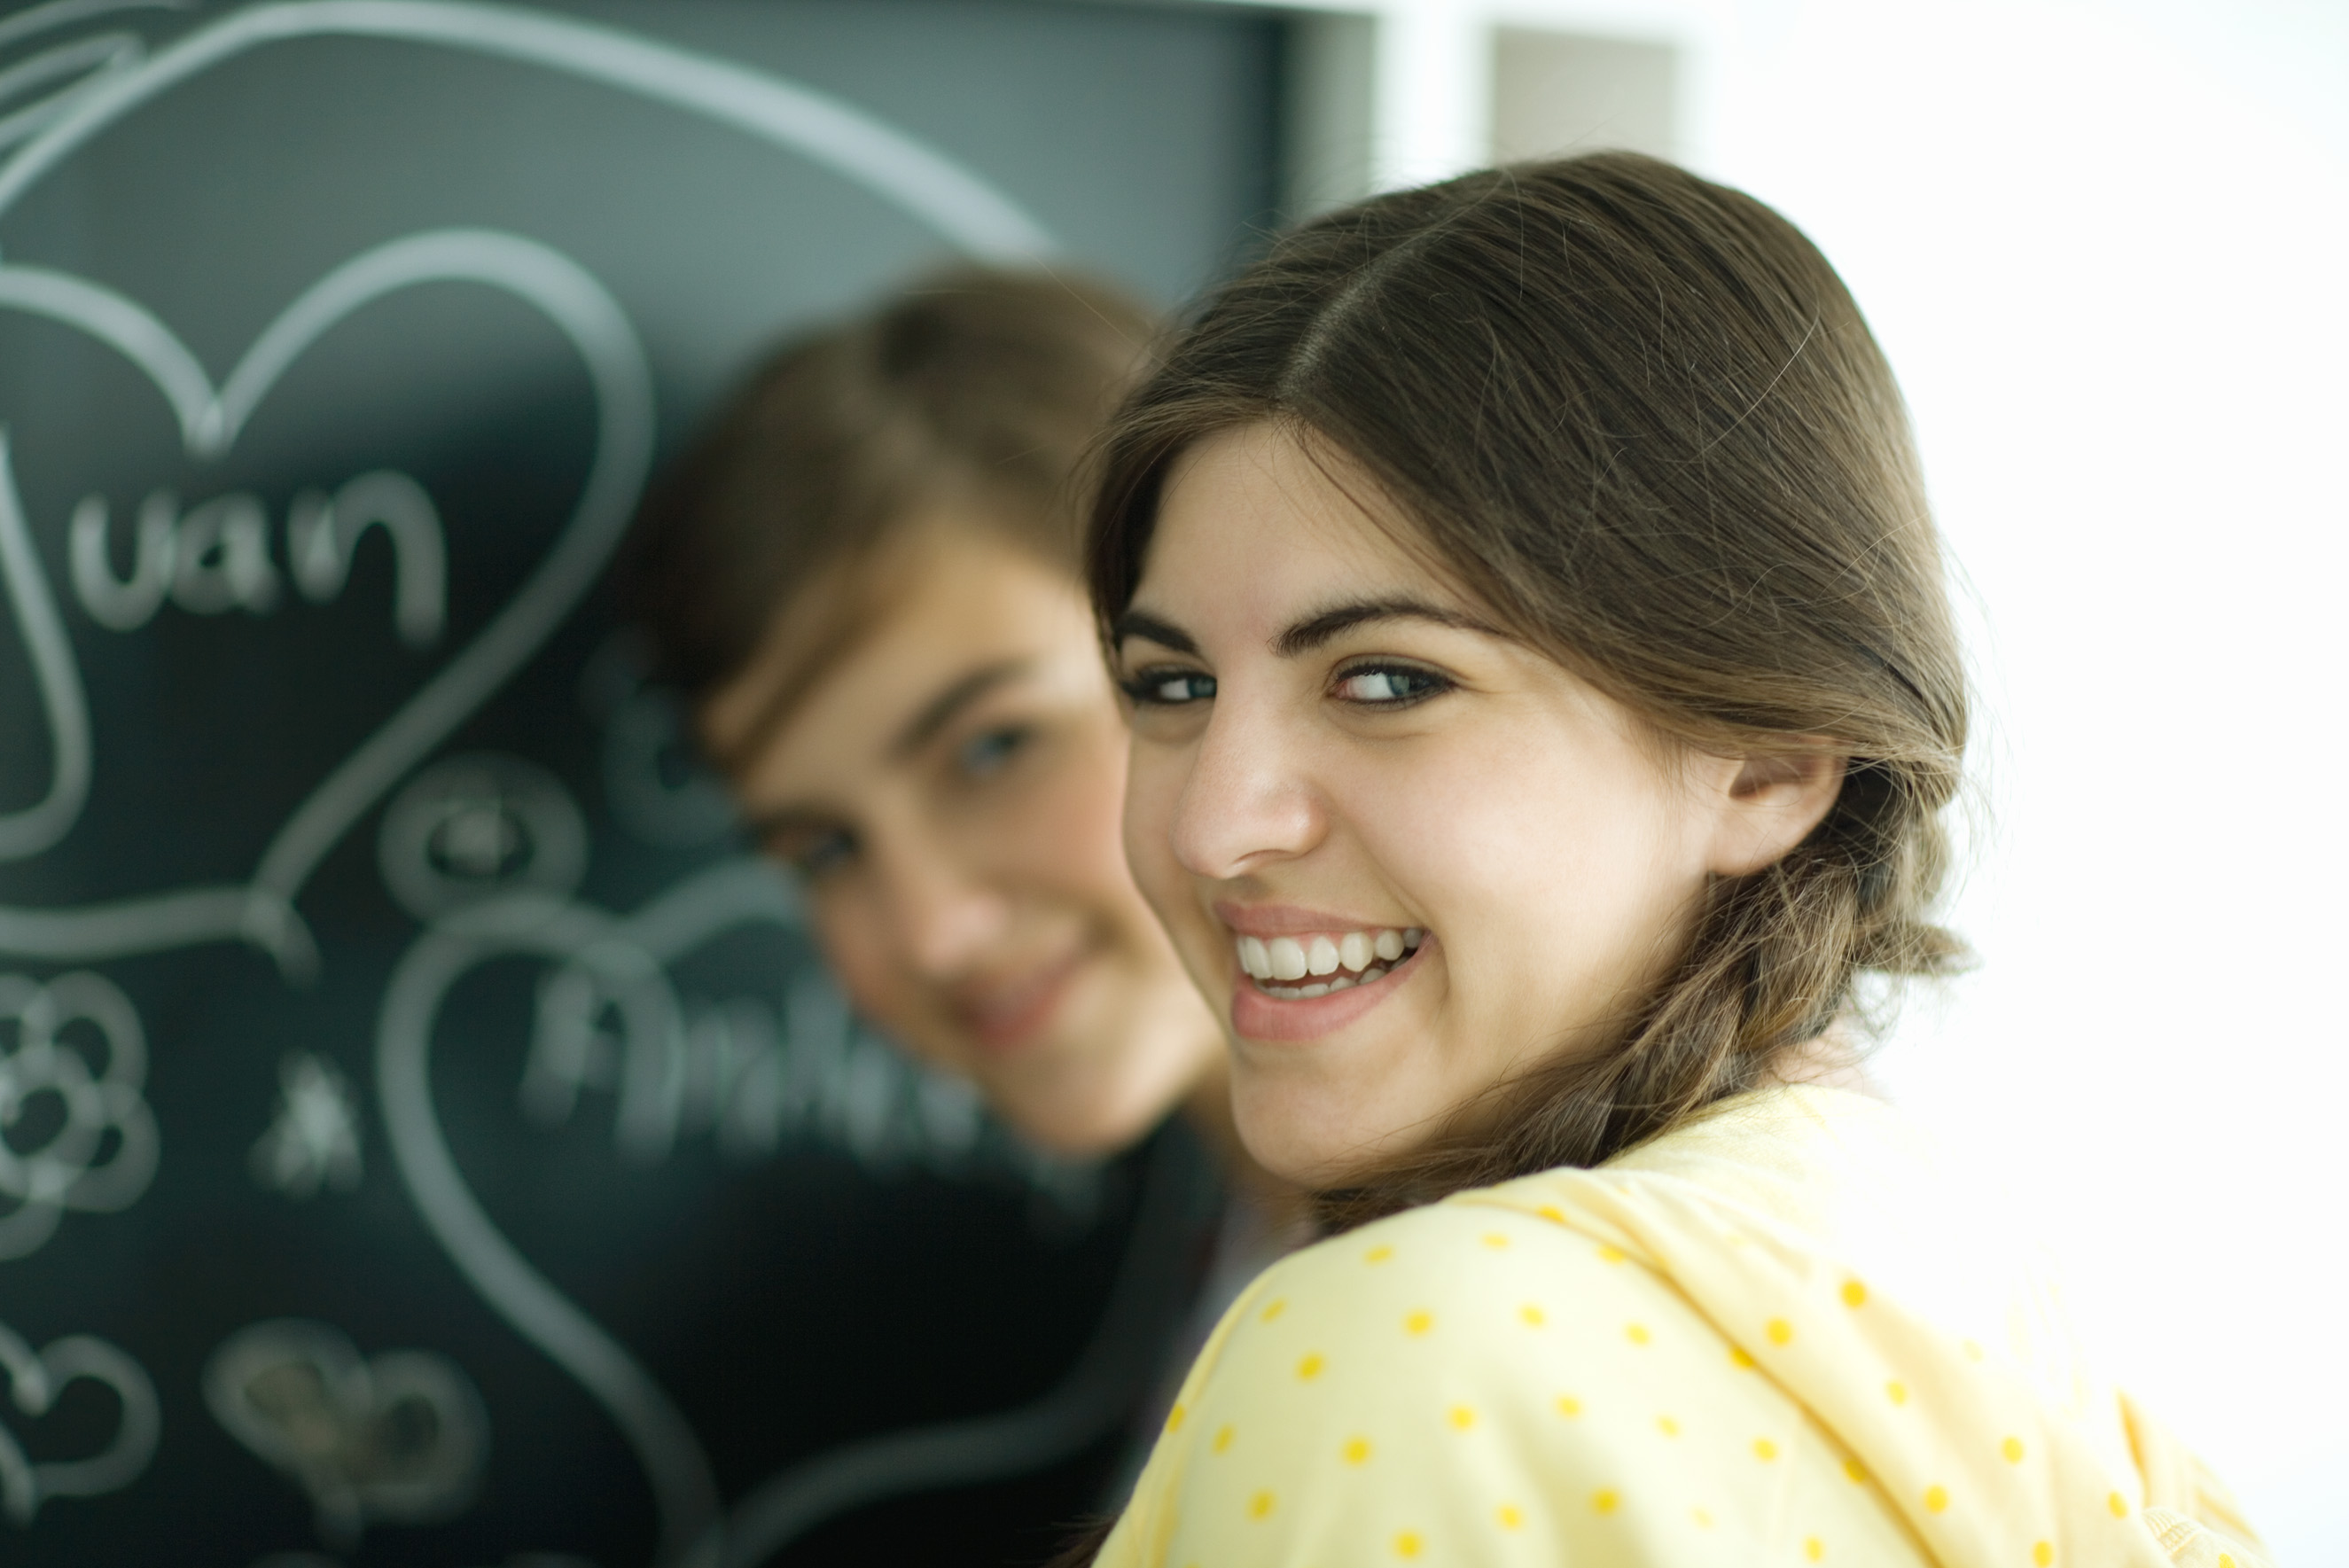 A smiling girl and a smiling boy in the background, in front of a blackboard.